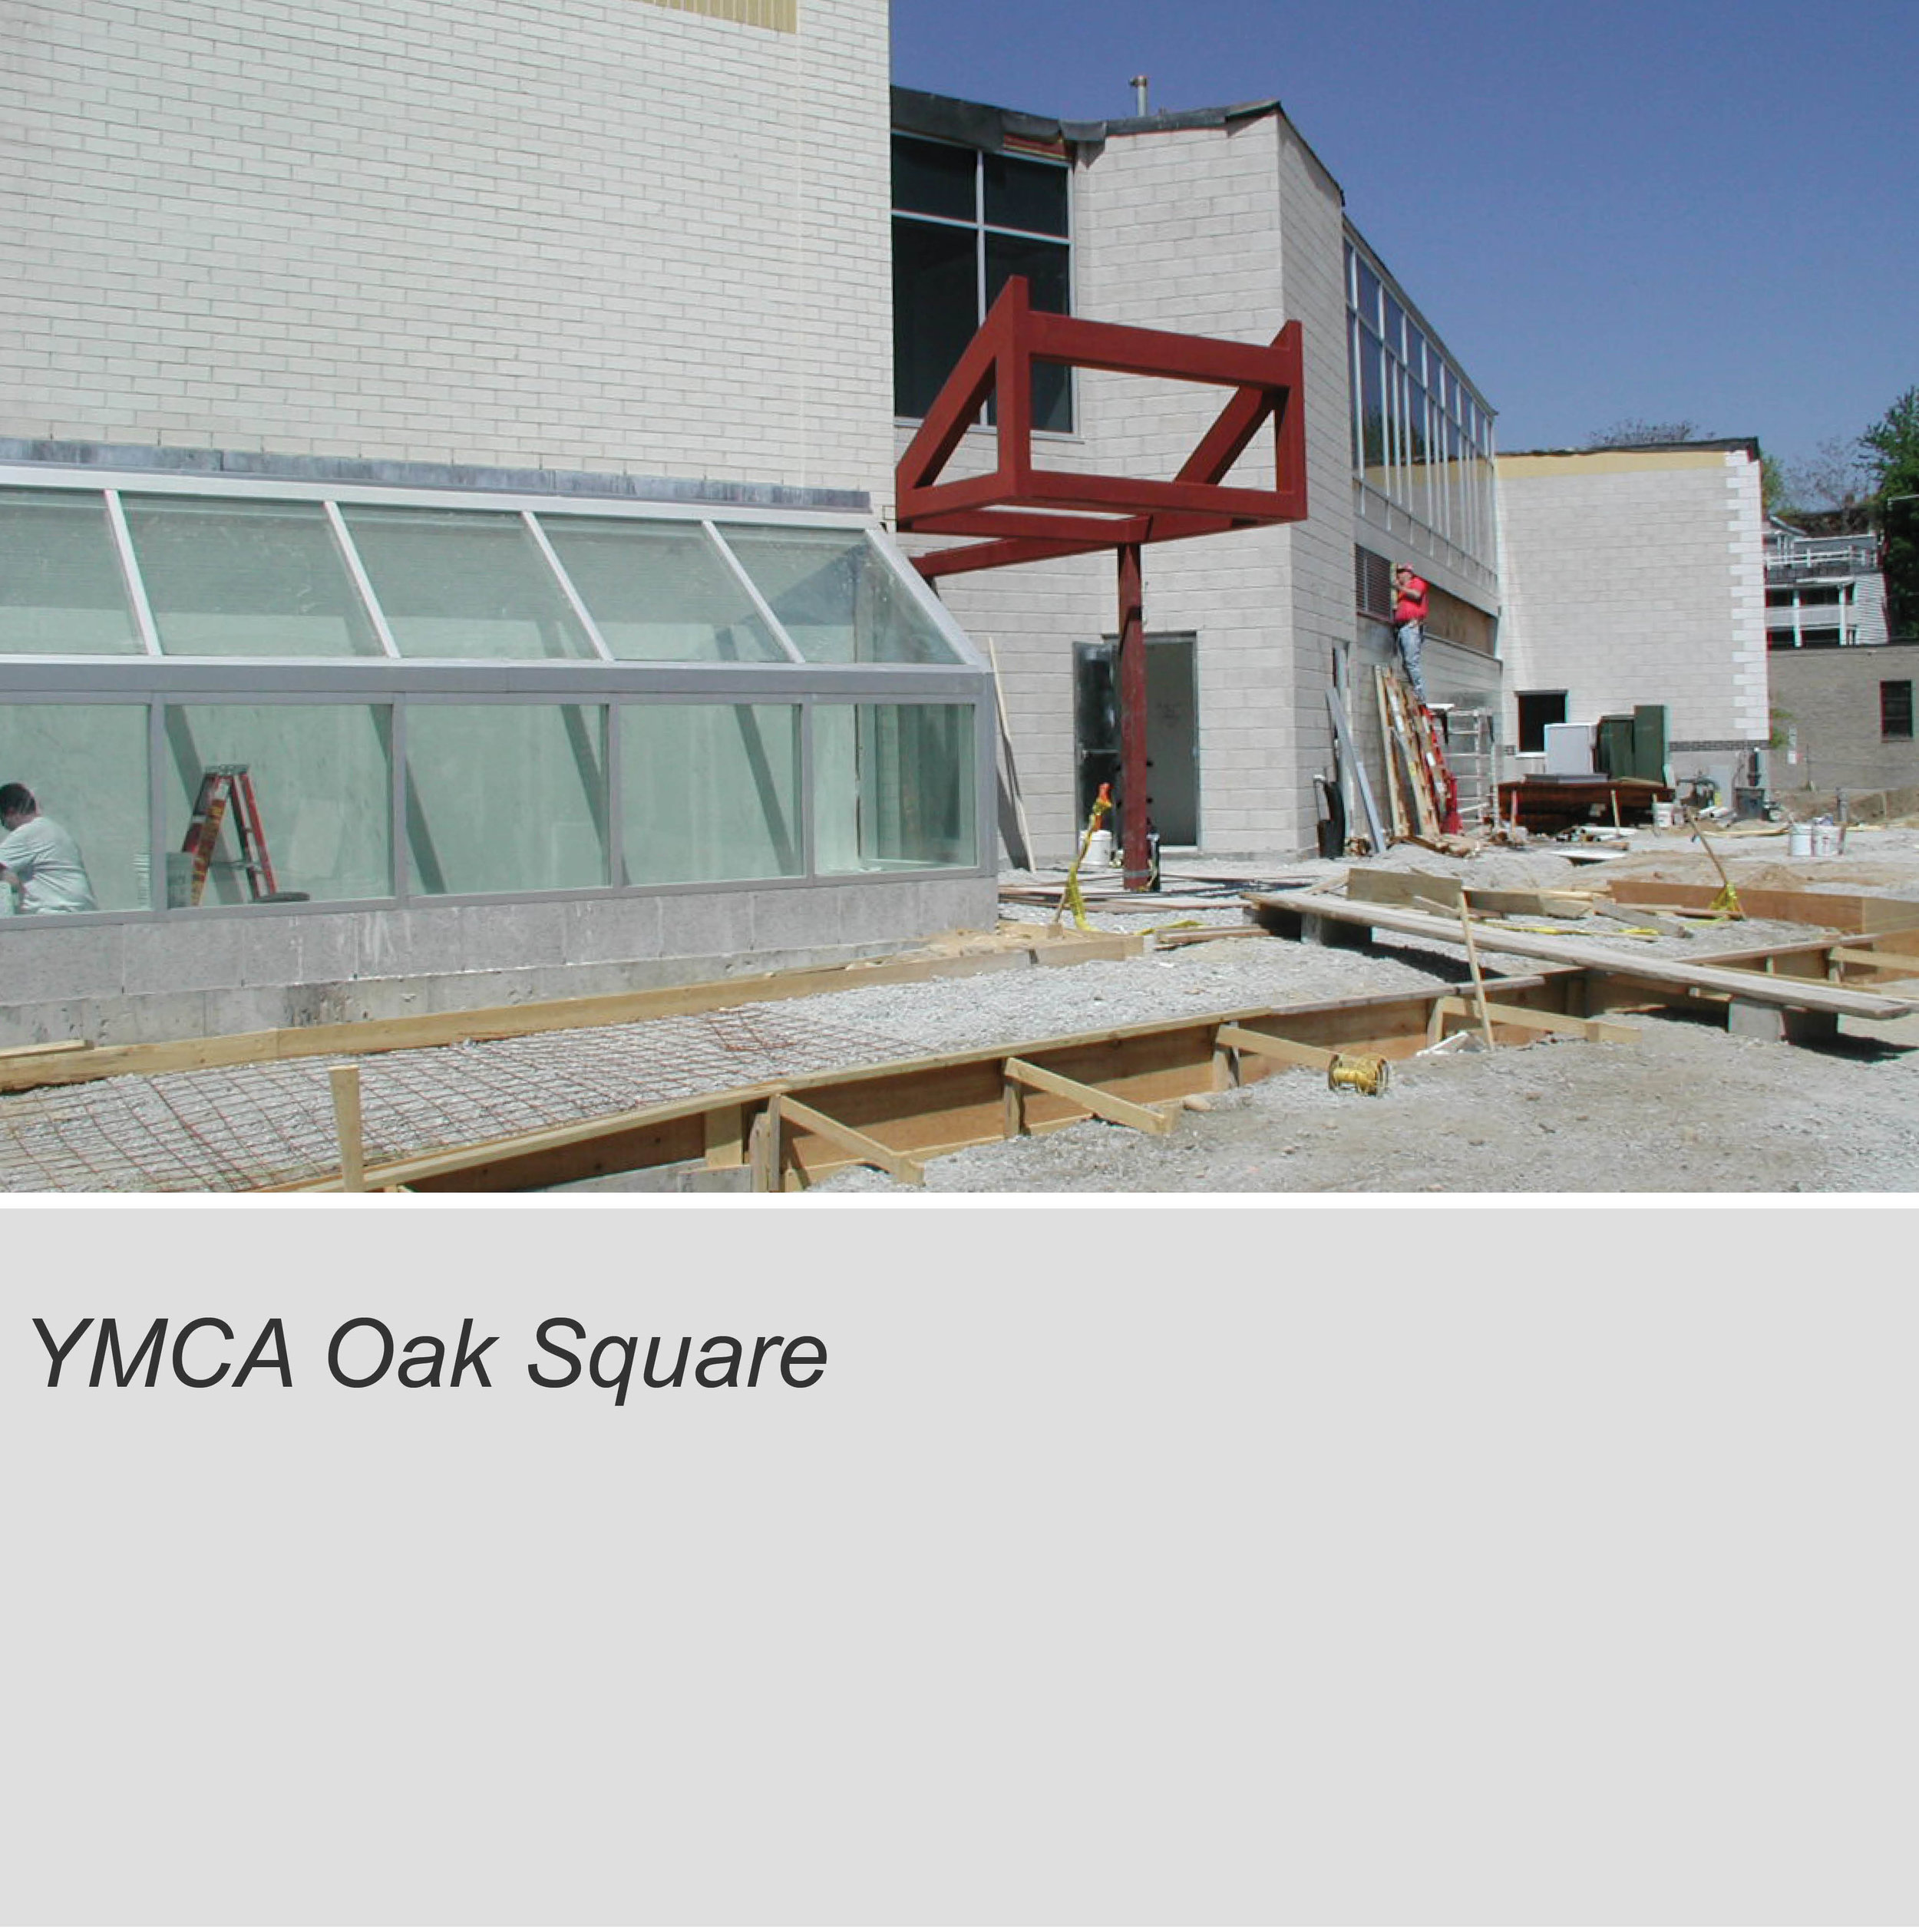 YMCA Oak Square Structural